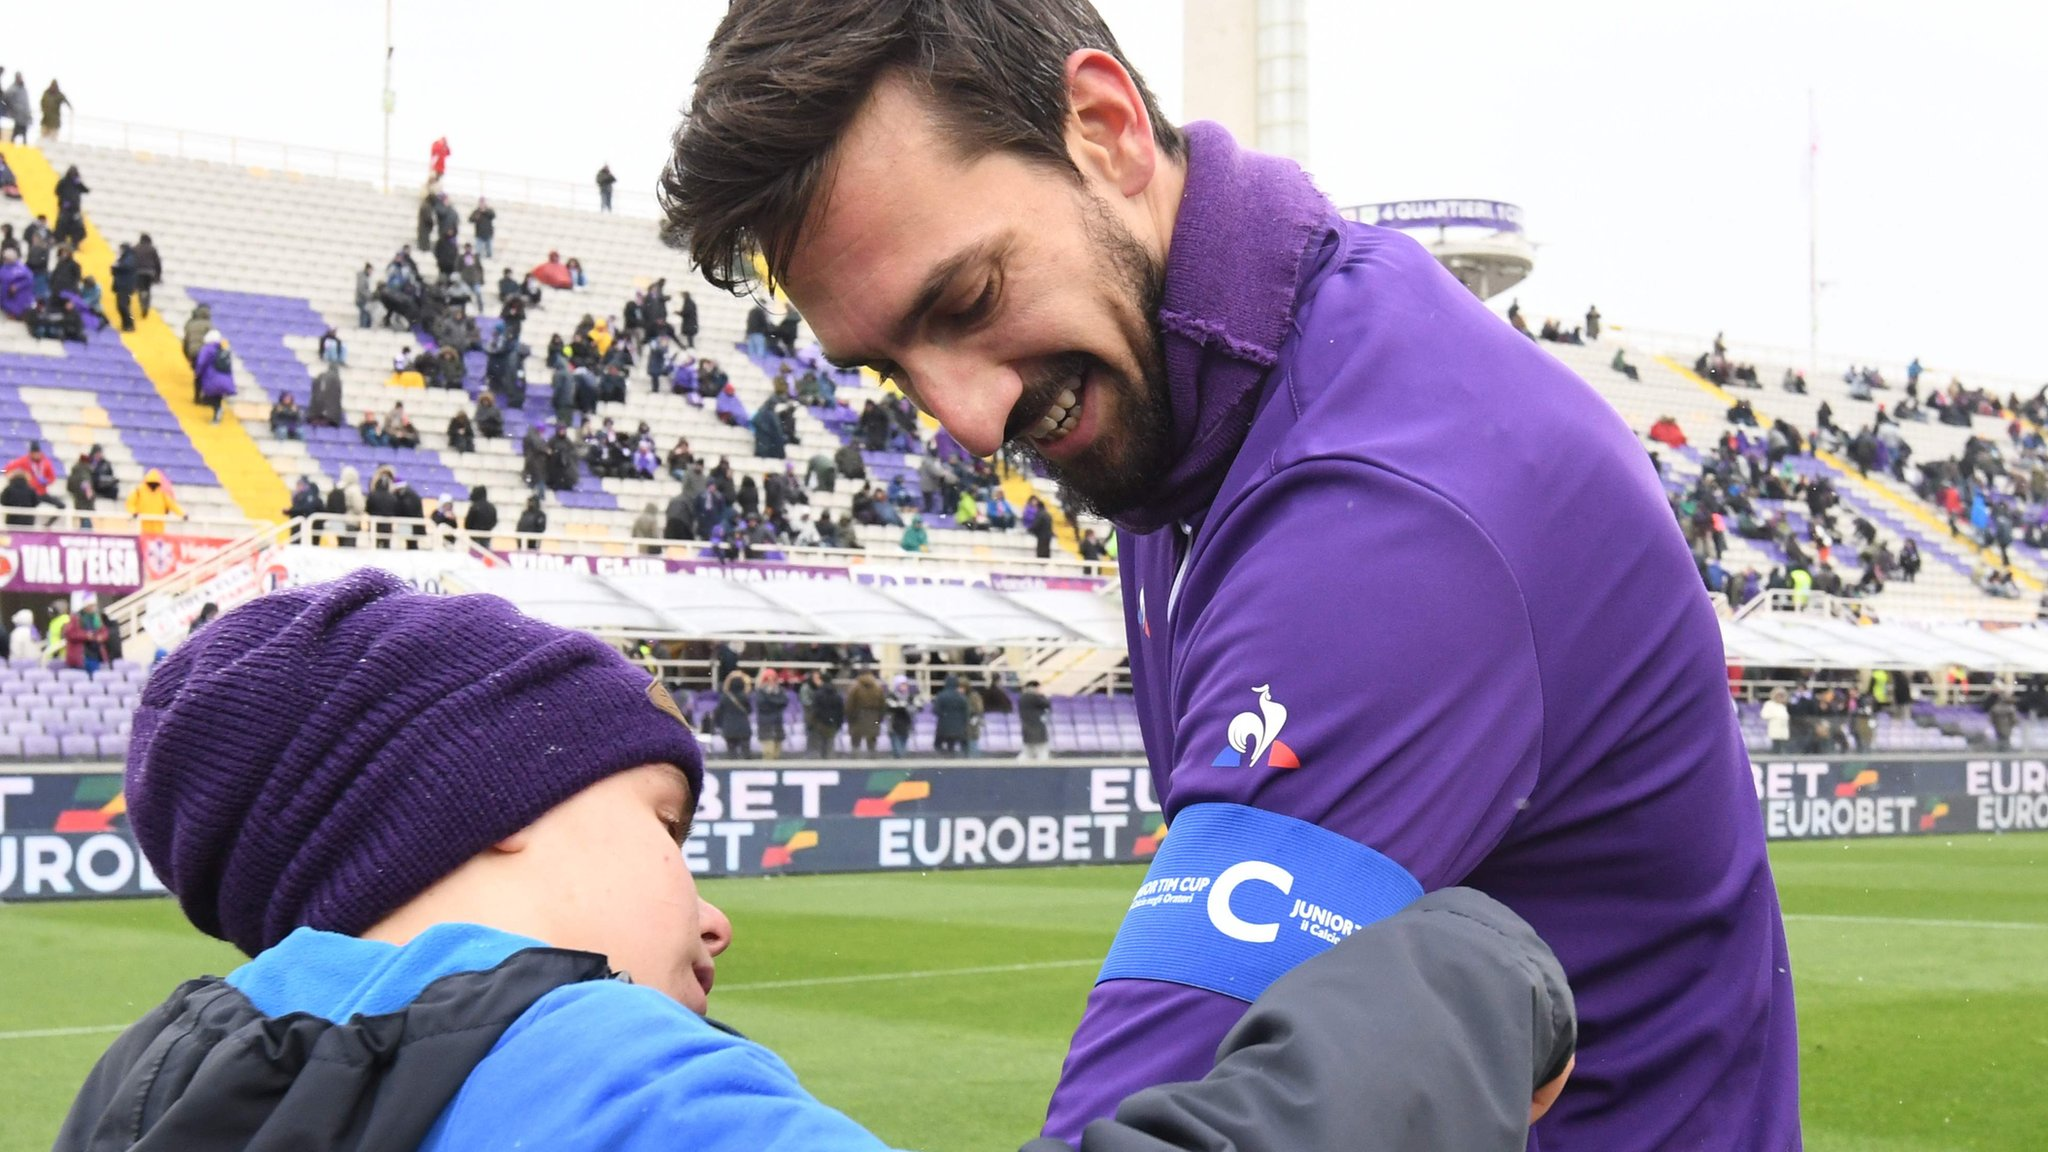 'Ciao Capitano - Astori's death leaves Fiorentina and Italy in state of shock'